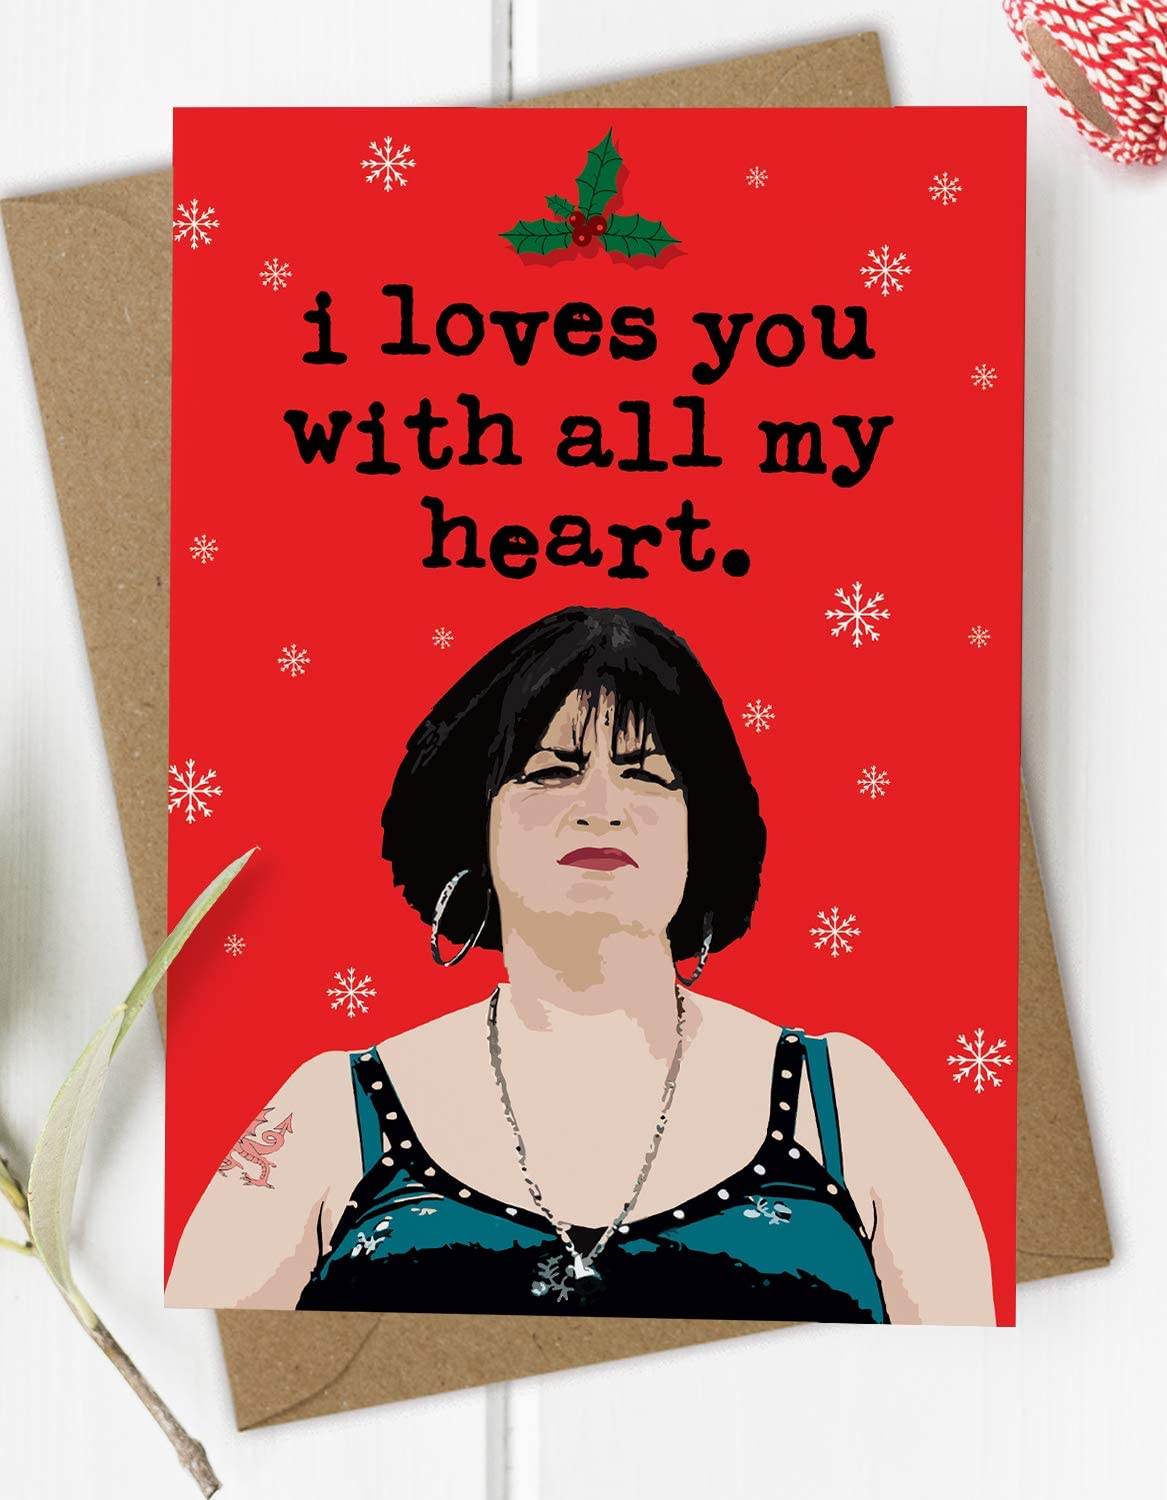 Wife Love You Nessa Gavin /& Stacey Husband Christmas Card For Him Her Partner